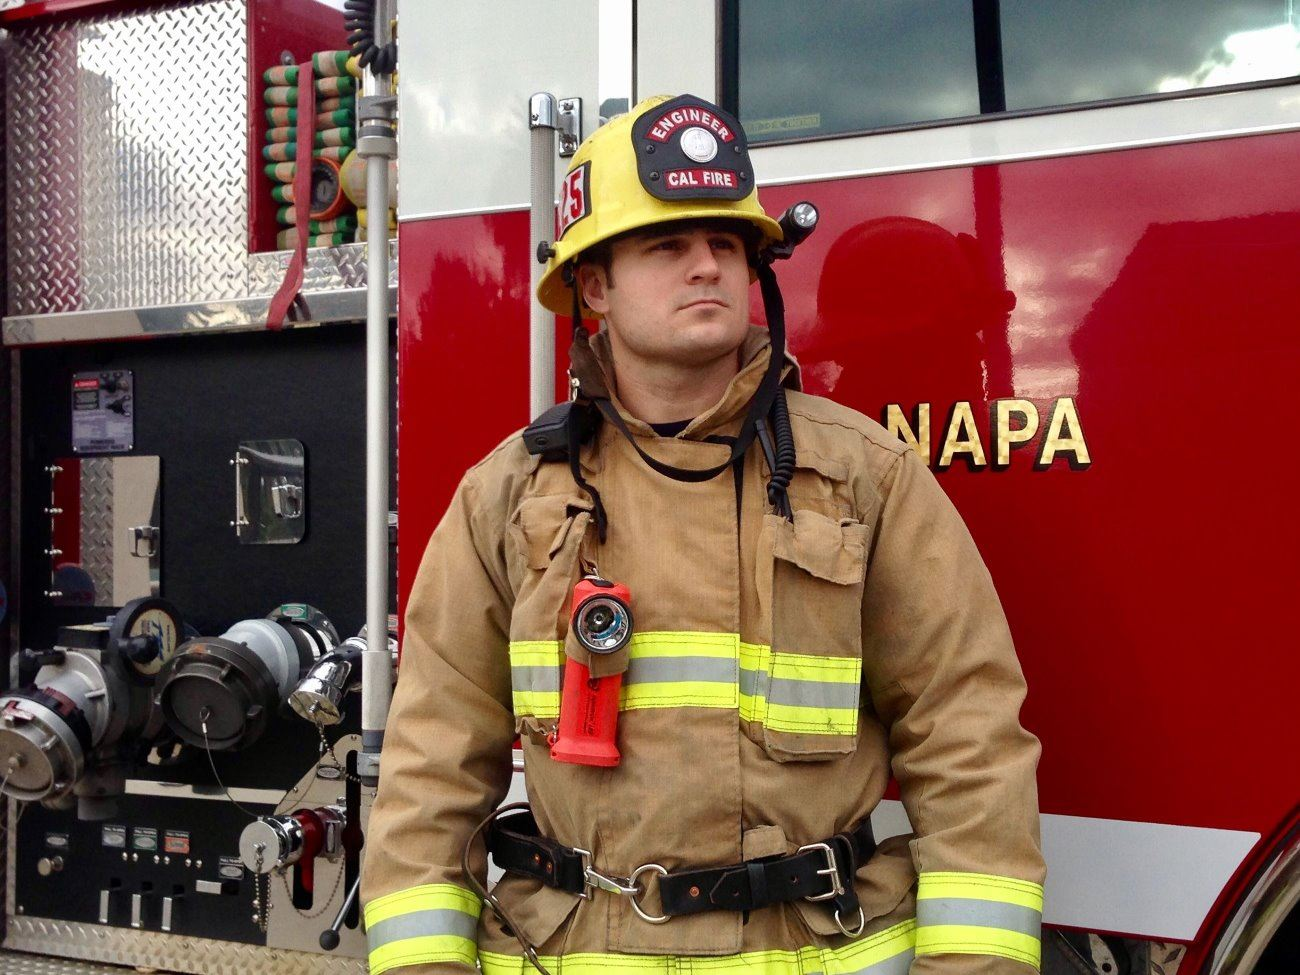 Face of a Napa County firefighter dressed in bunker gear